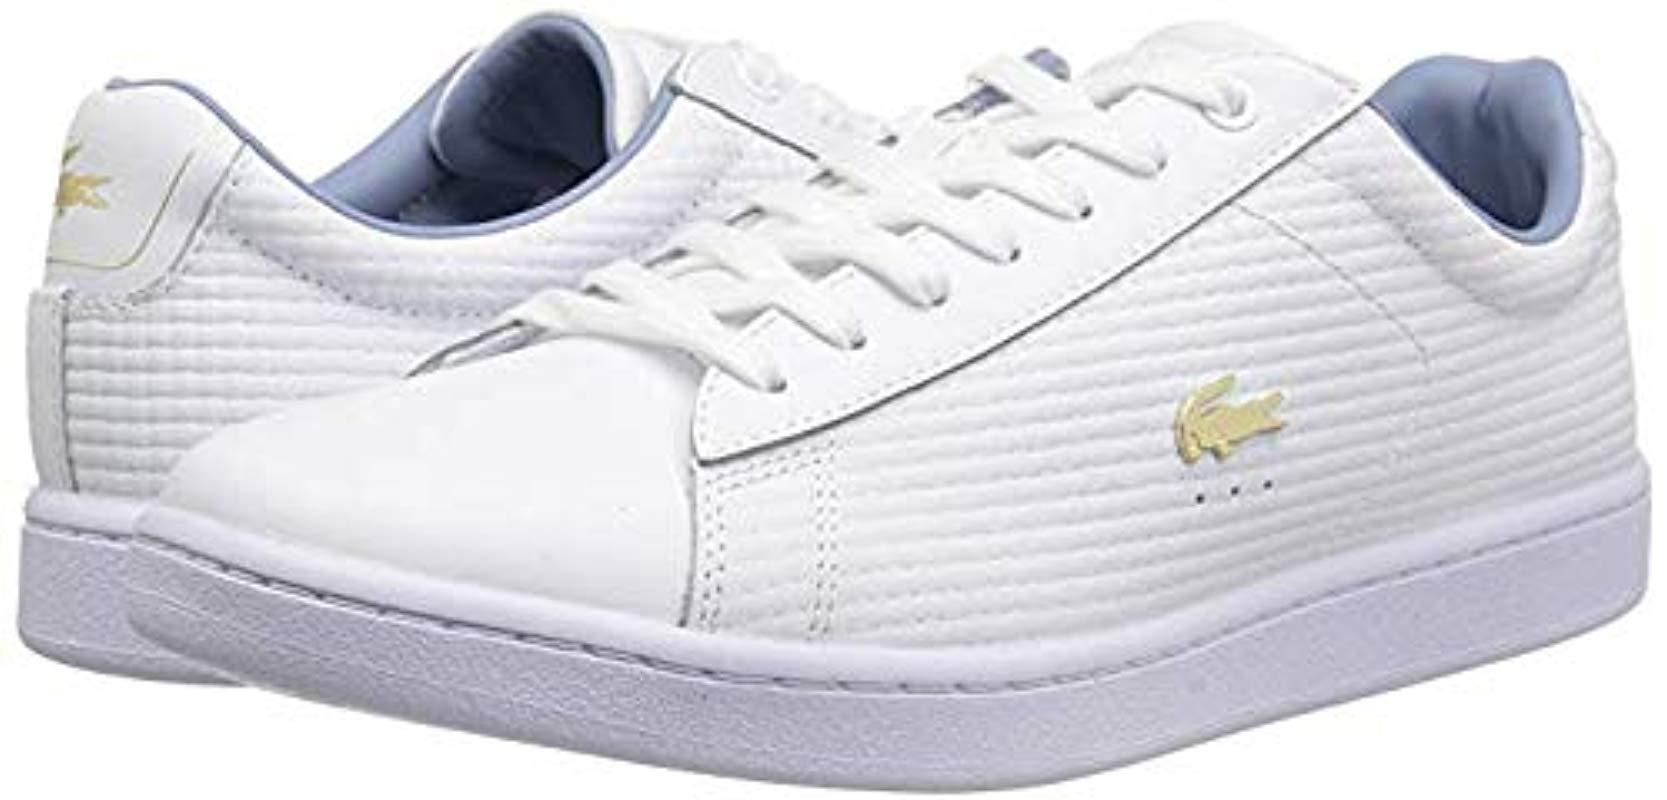 e56900150ea Lacoste Carnaby Evo 118 6 Spw Sneaker in White - Save 34% - Lyst